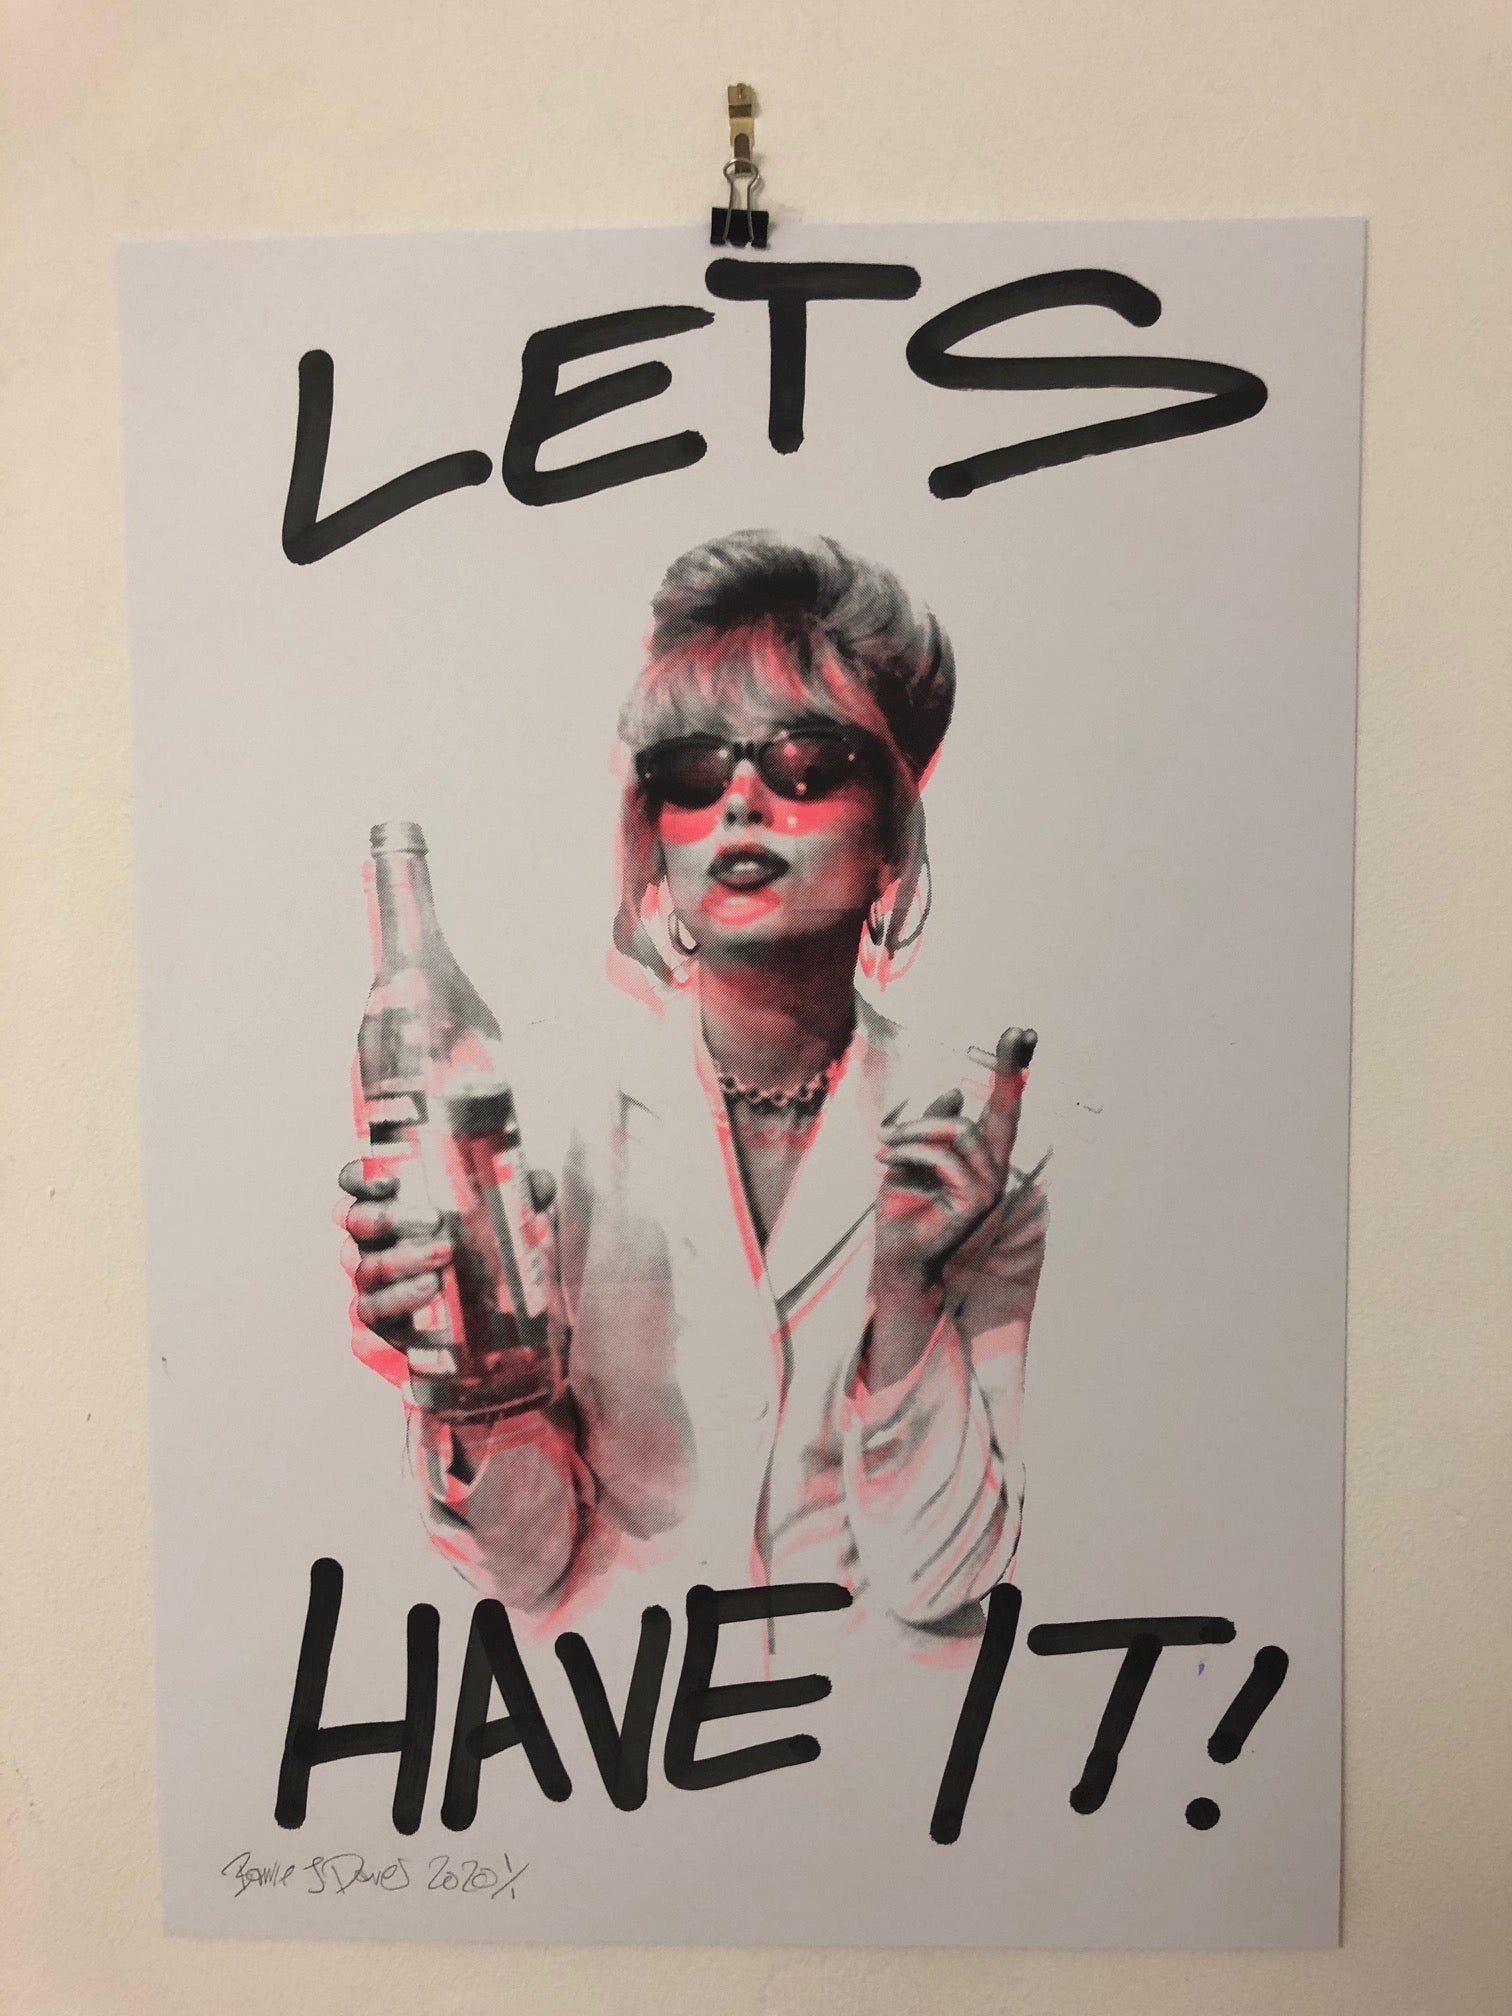 Lets Have It I Want It All Print by Barrie J Davies 2020 - unframed Silkscreen print on paper (hand finished with tagging marker pen) edition of 1/1 - A2 size 42cm x 59.4cm.  Barrie J Davies is an Artist - Pop Art and Street art inspired Artist based in Brighton England UK - Paintings, Prints & Editions available.